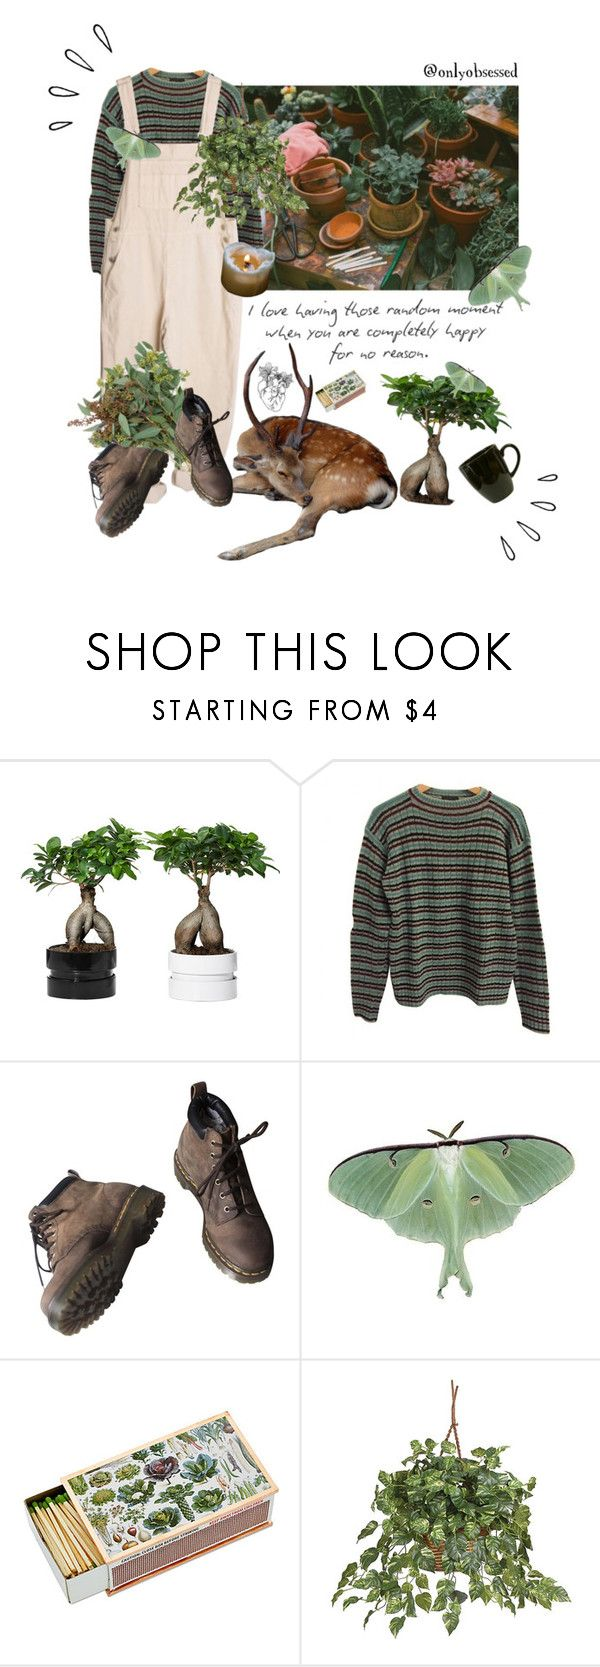 """""""Untitled #10"""" by onlyobsessed ❤ liked on Polyvore featuring Prada, Dr. Martens, Waechtersbach, Old Navy and Nearly Natural"""